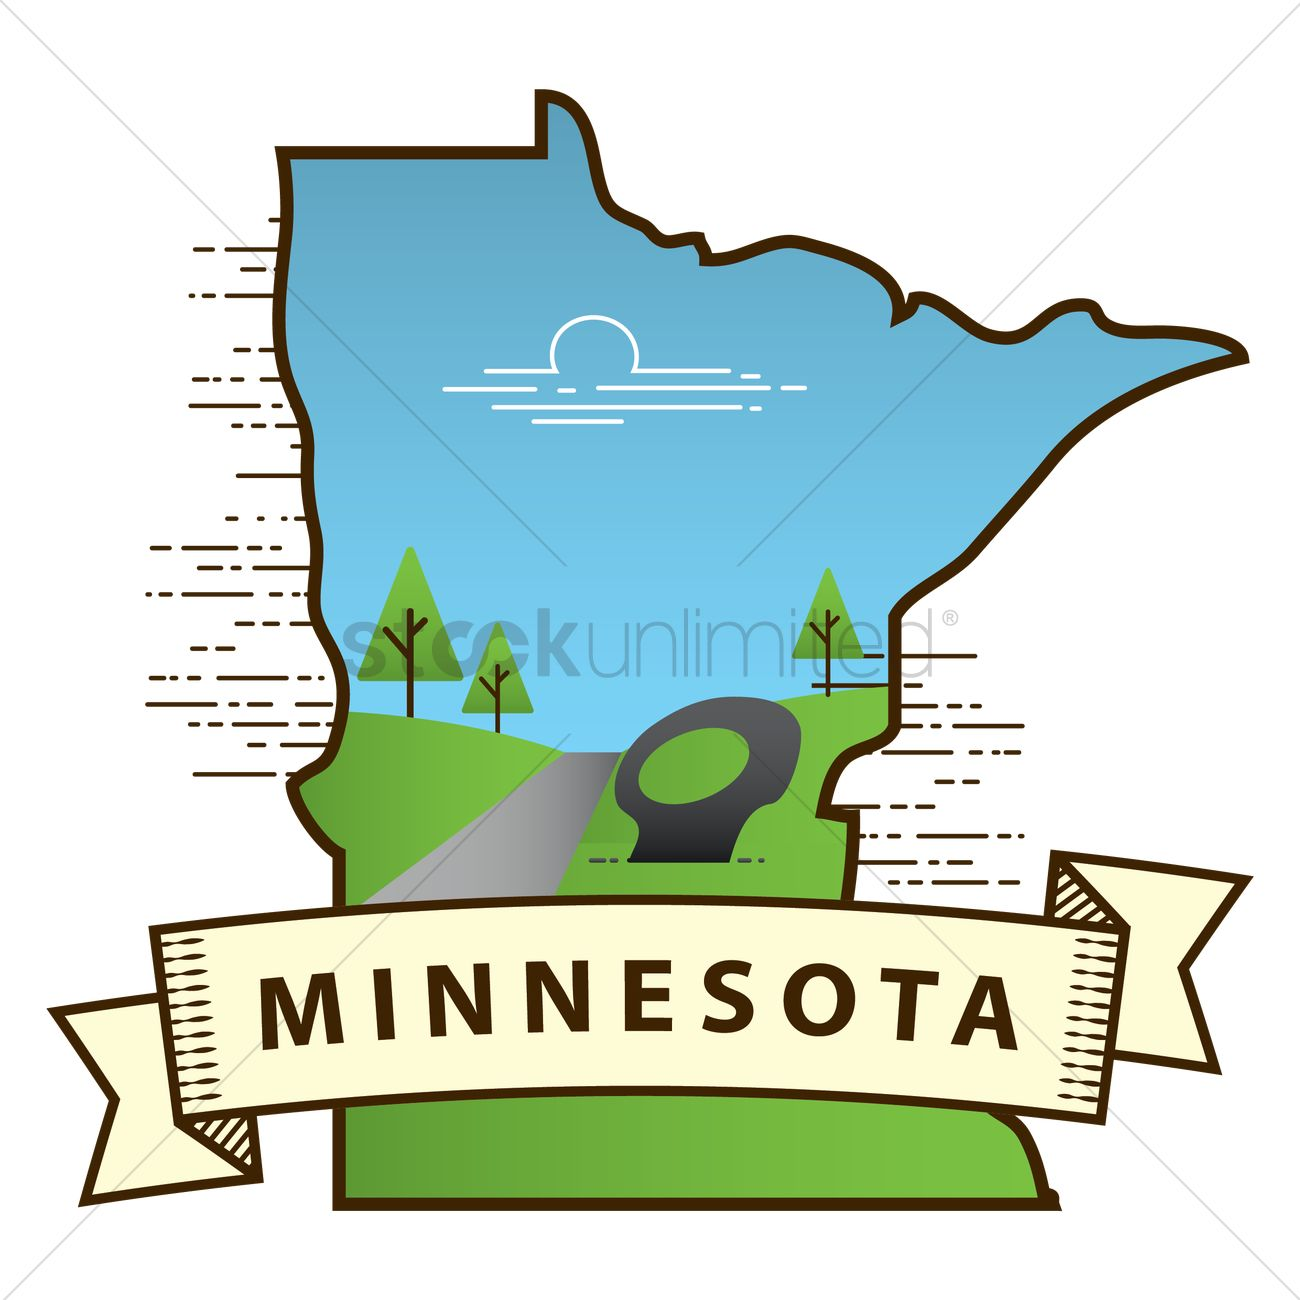 Minnesota State Map Vector Image 1564467 Stockunlimited